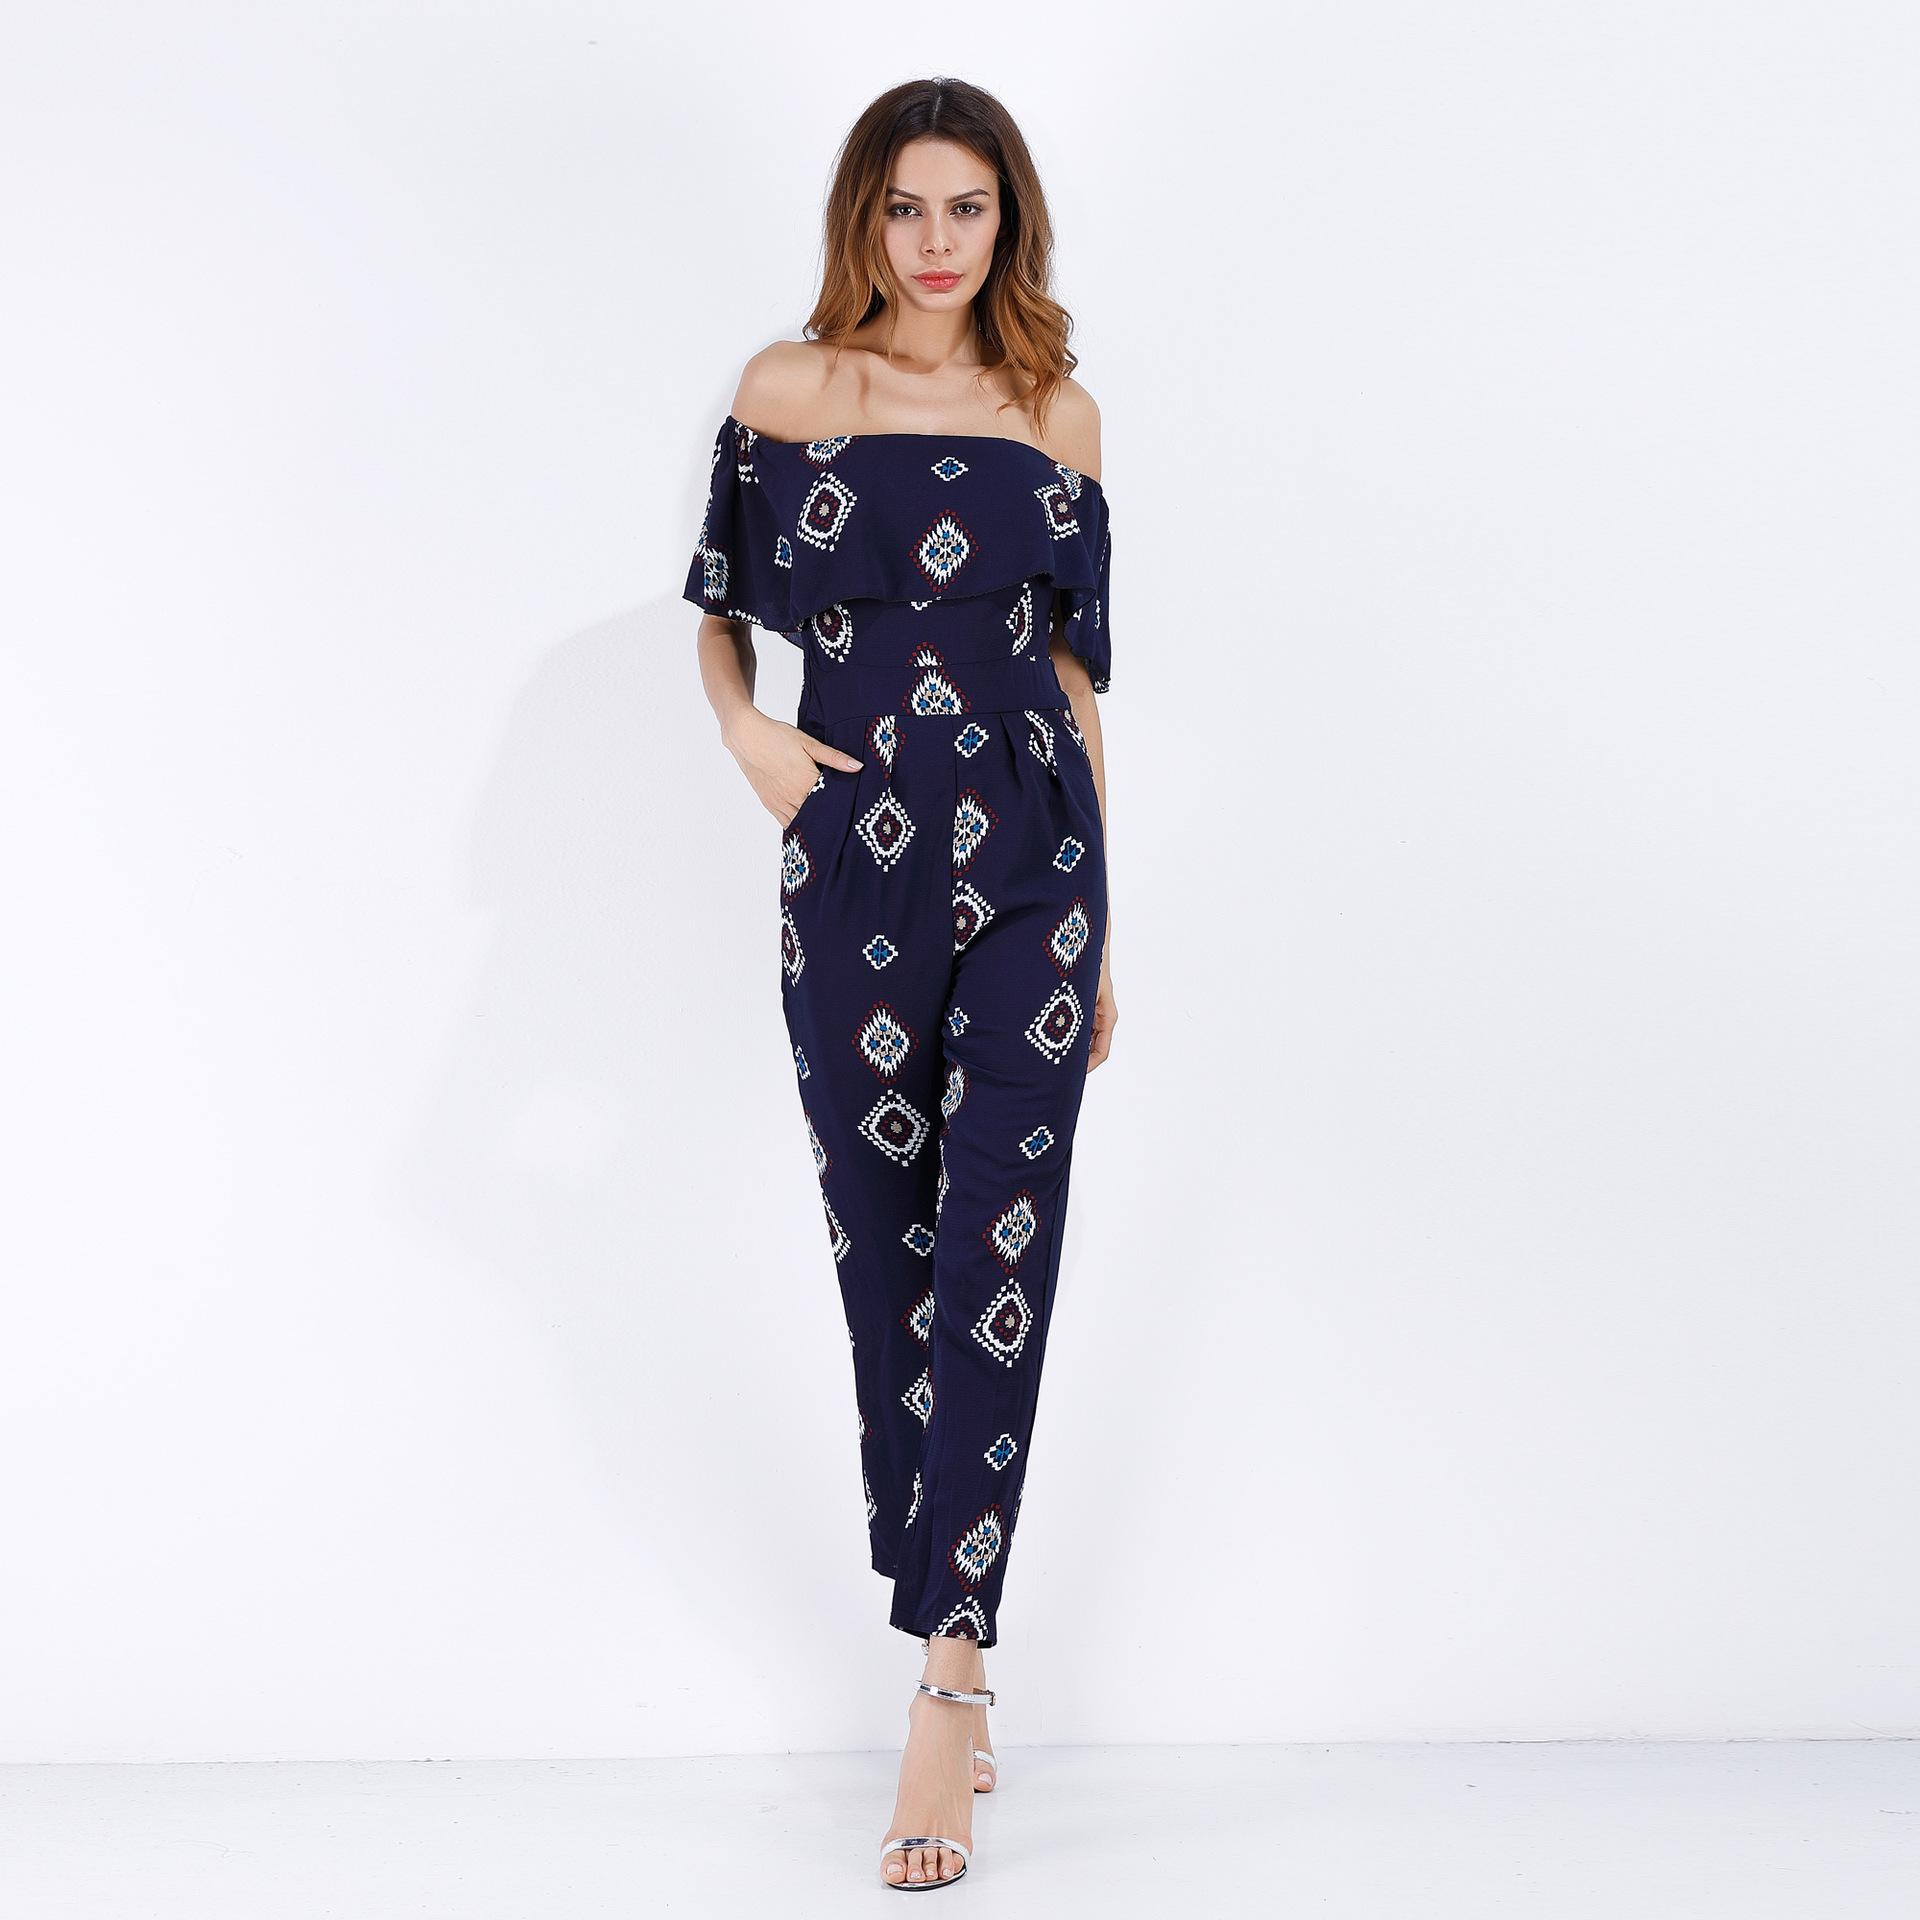 c5ad0ab1c1a0 2019 Rompers Sleeveless Striped Wide Leg Jumpsuits Summer Belted Playsuits  Culottes For The Womens Clothes Pants   Capris Skirt Casual Dress From  Xcq0318